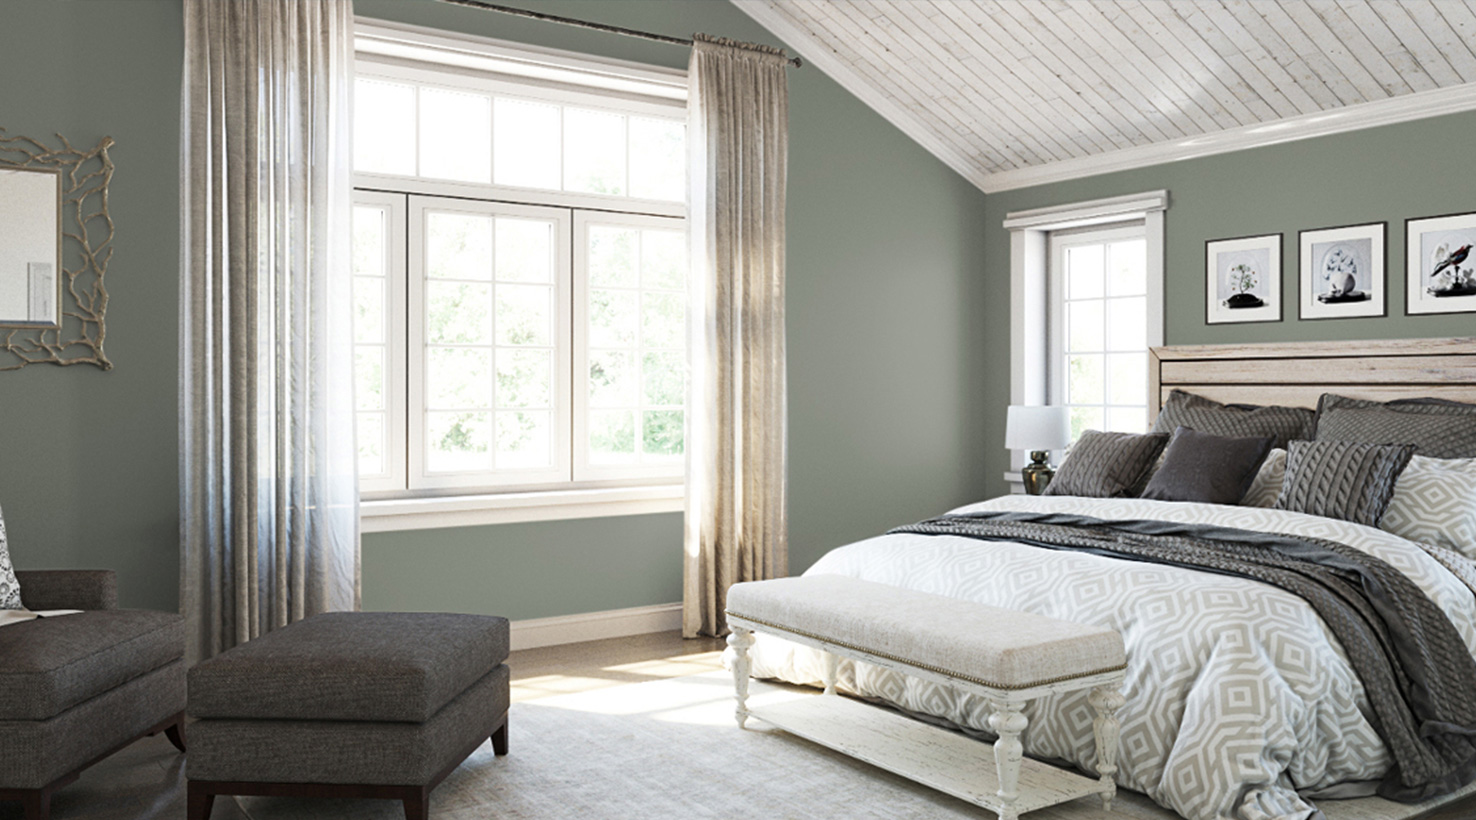 Top 3 Blue Green Paint Colors for Dark and Dramatic Walls ...